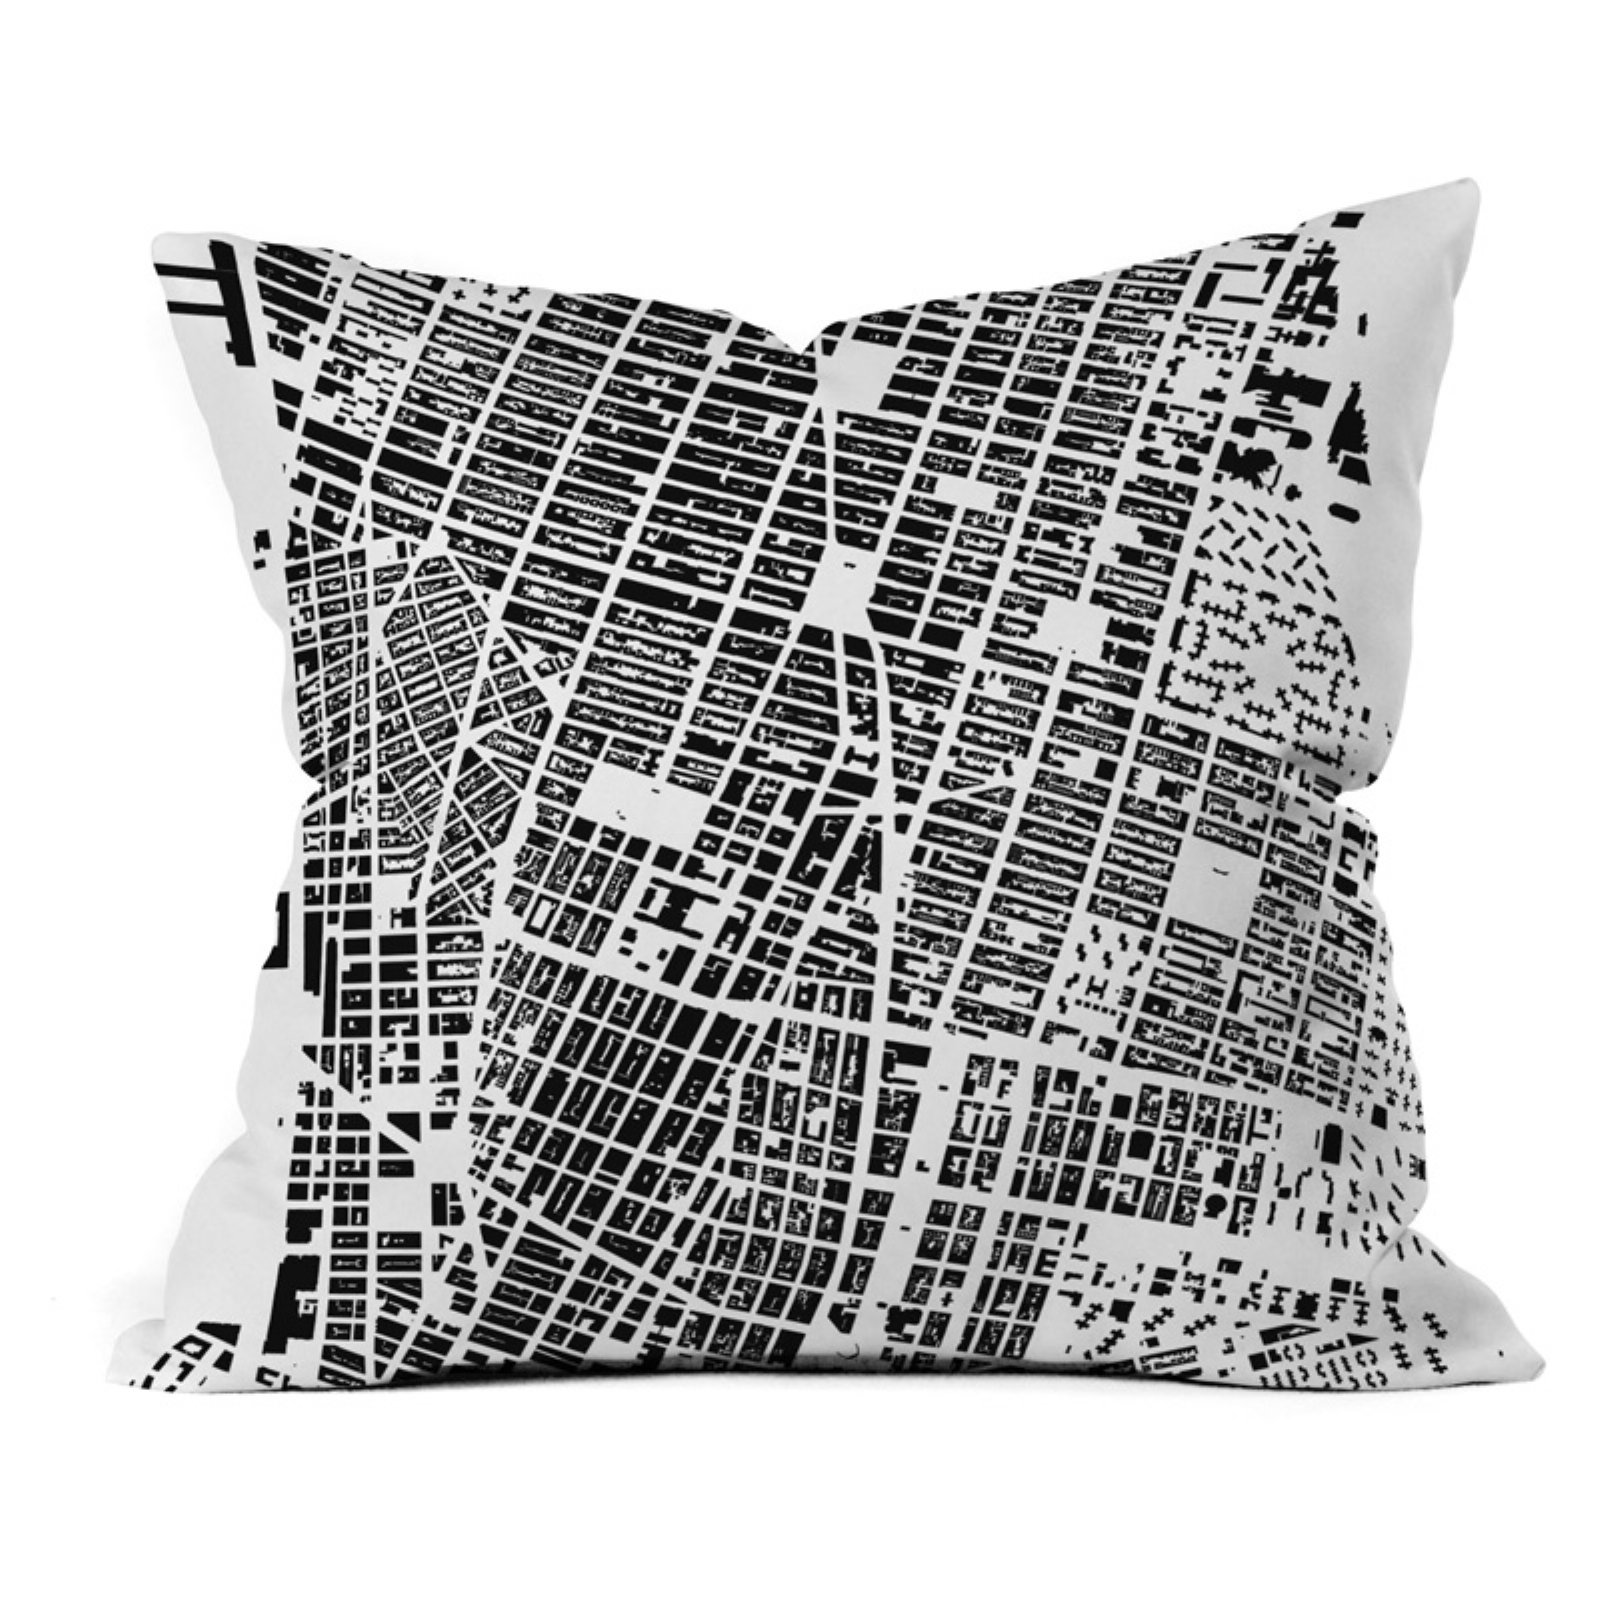 Deny Designs City Fabric Inc Nyc White Outdoor Throw Pillow In 2019